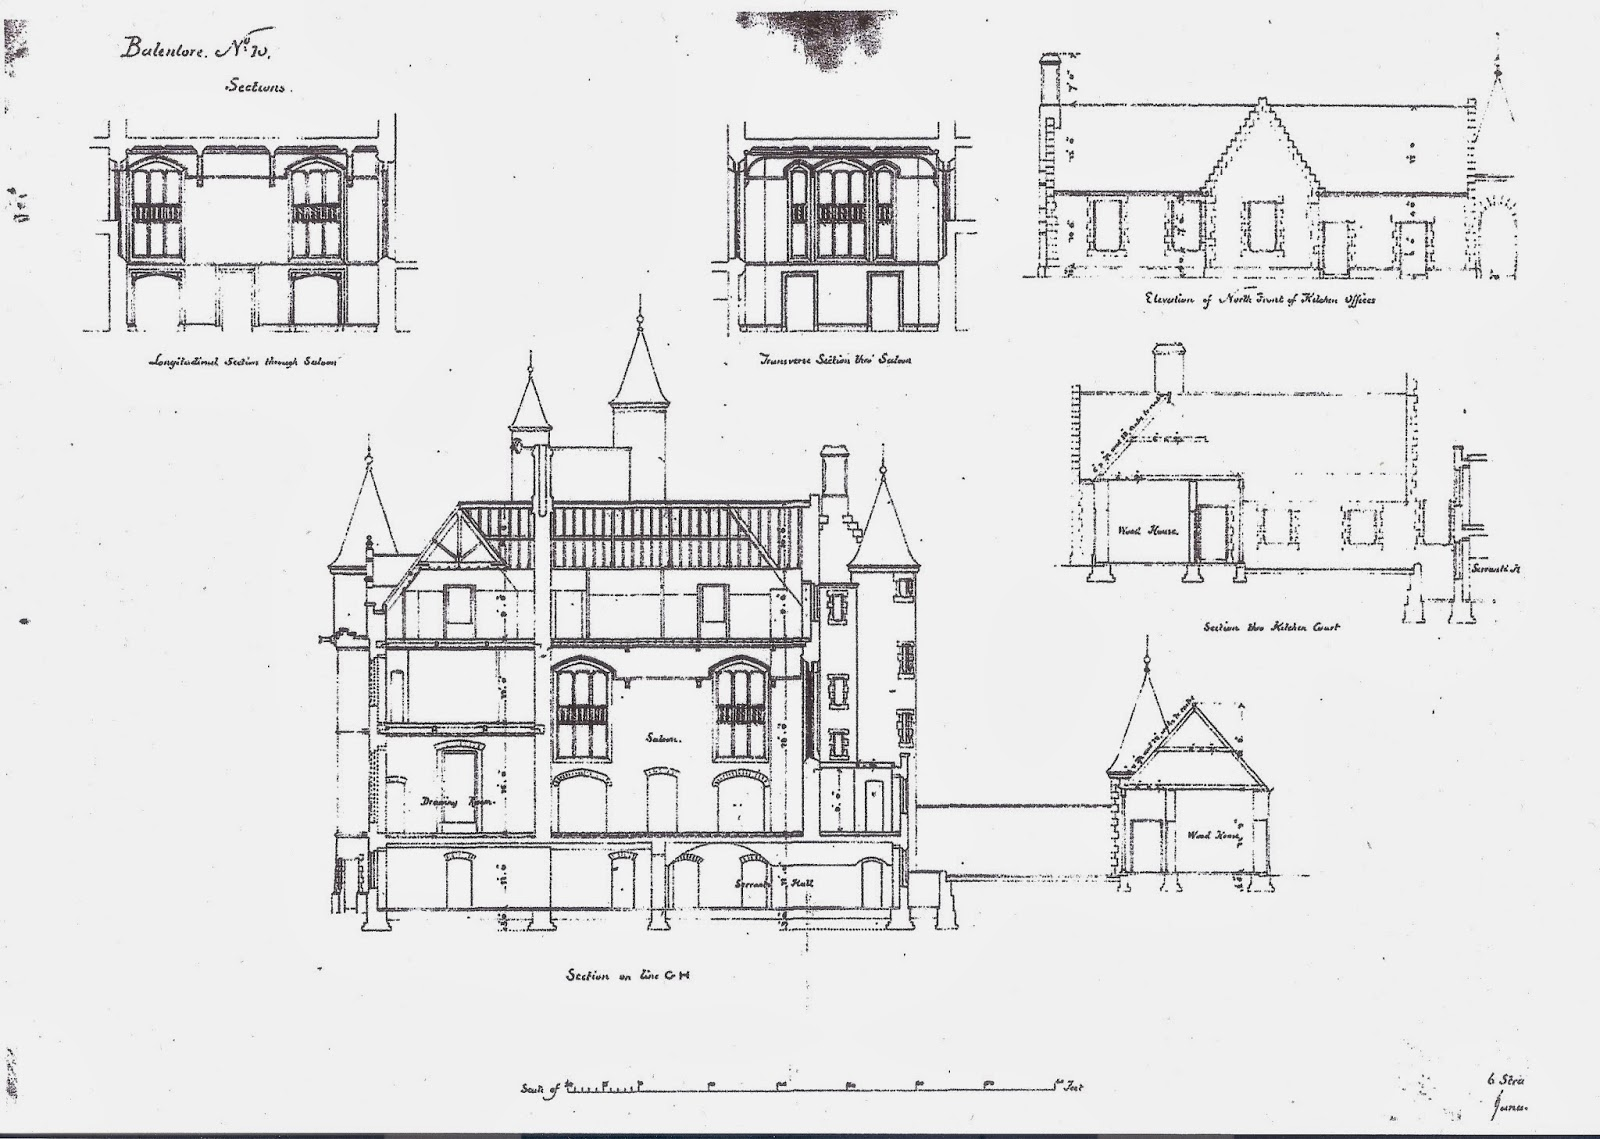 balintore castle restoration project november 2013 plan 10 sections